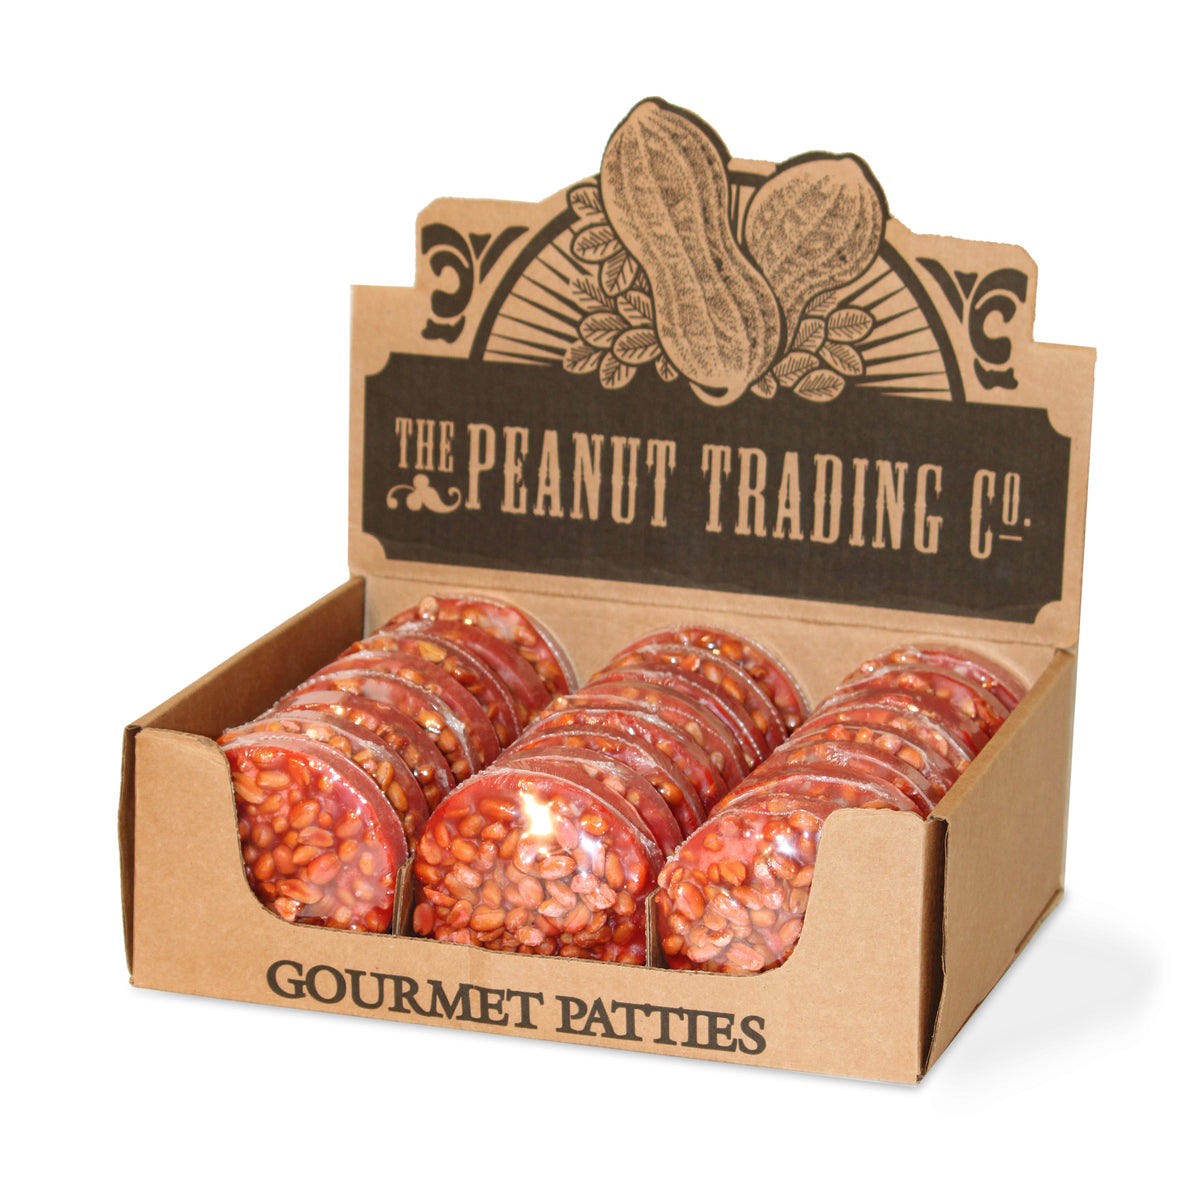 Peanut Trading Company - Peanut Pattie Counter Display - Giant